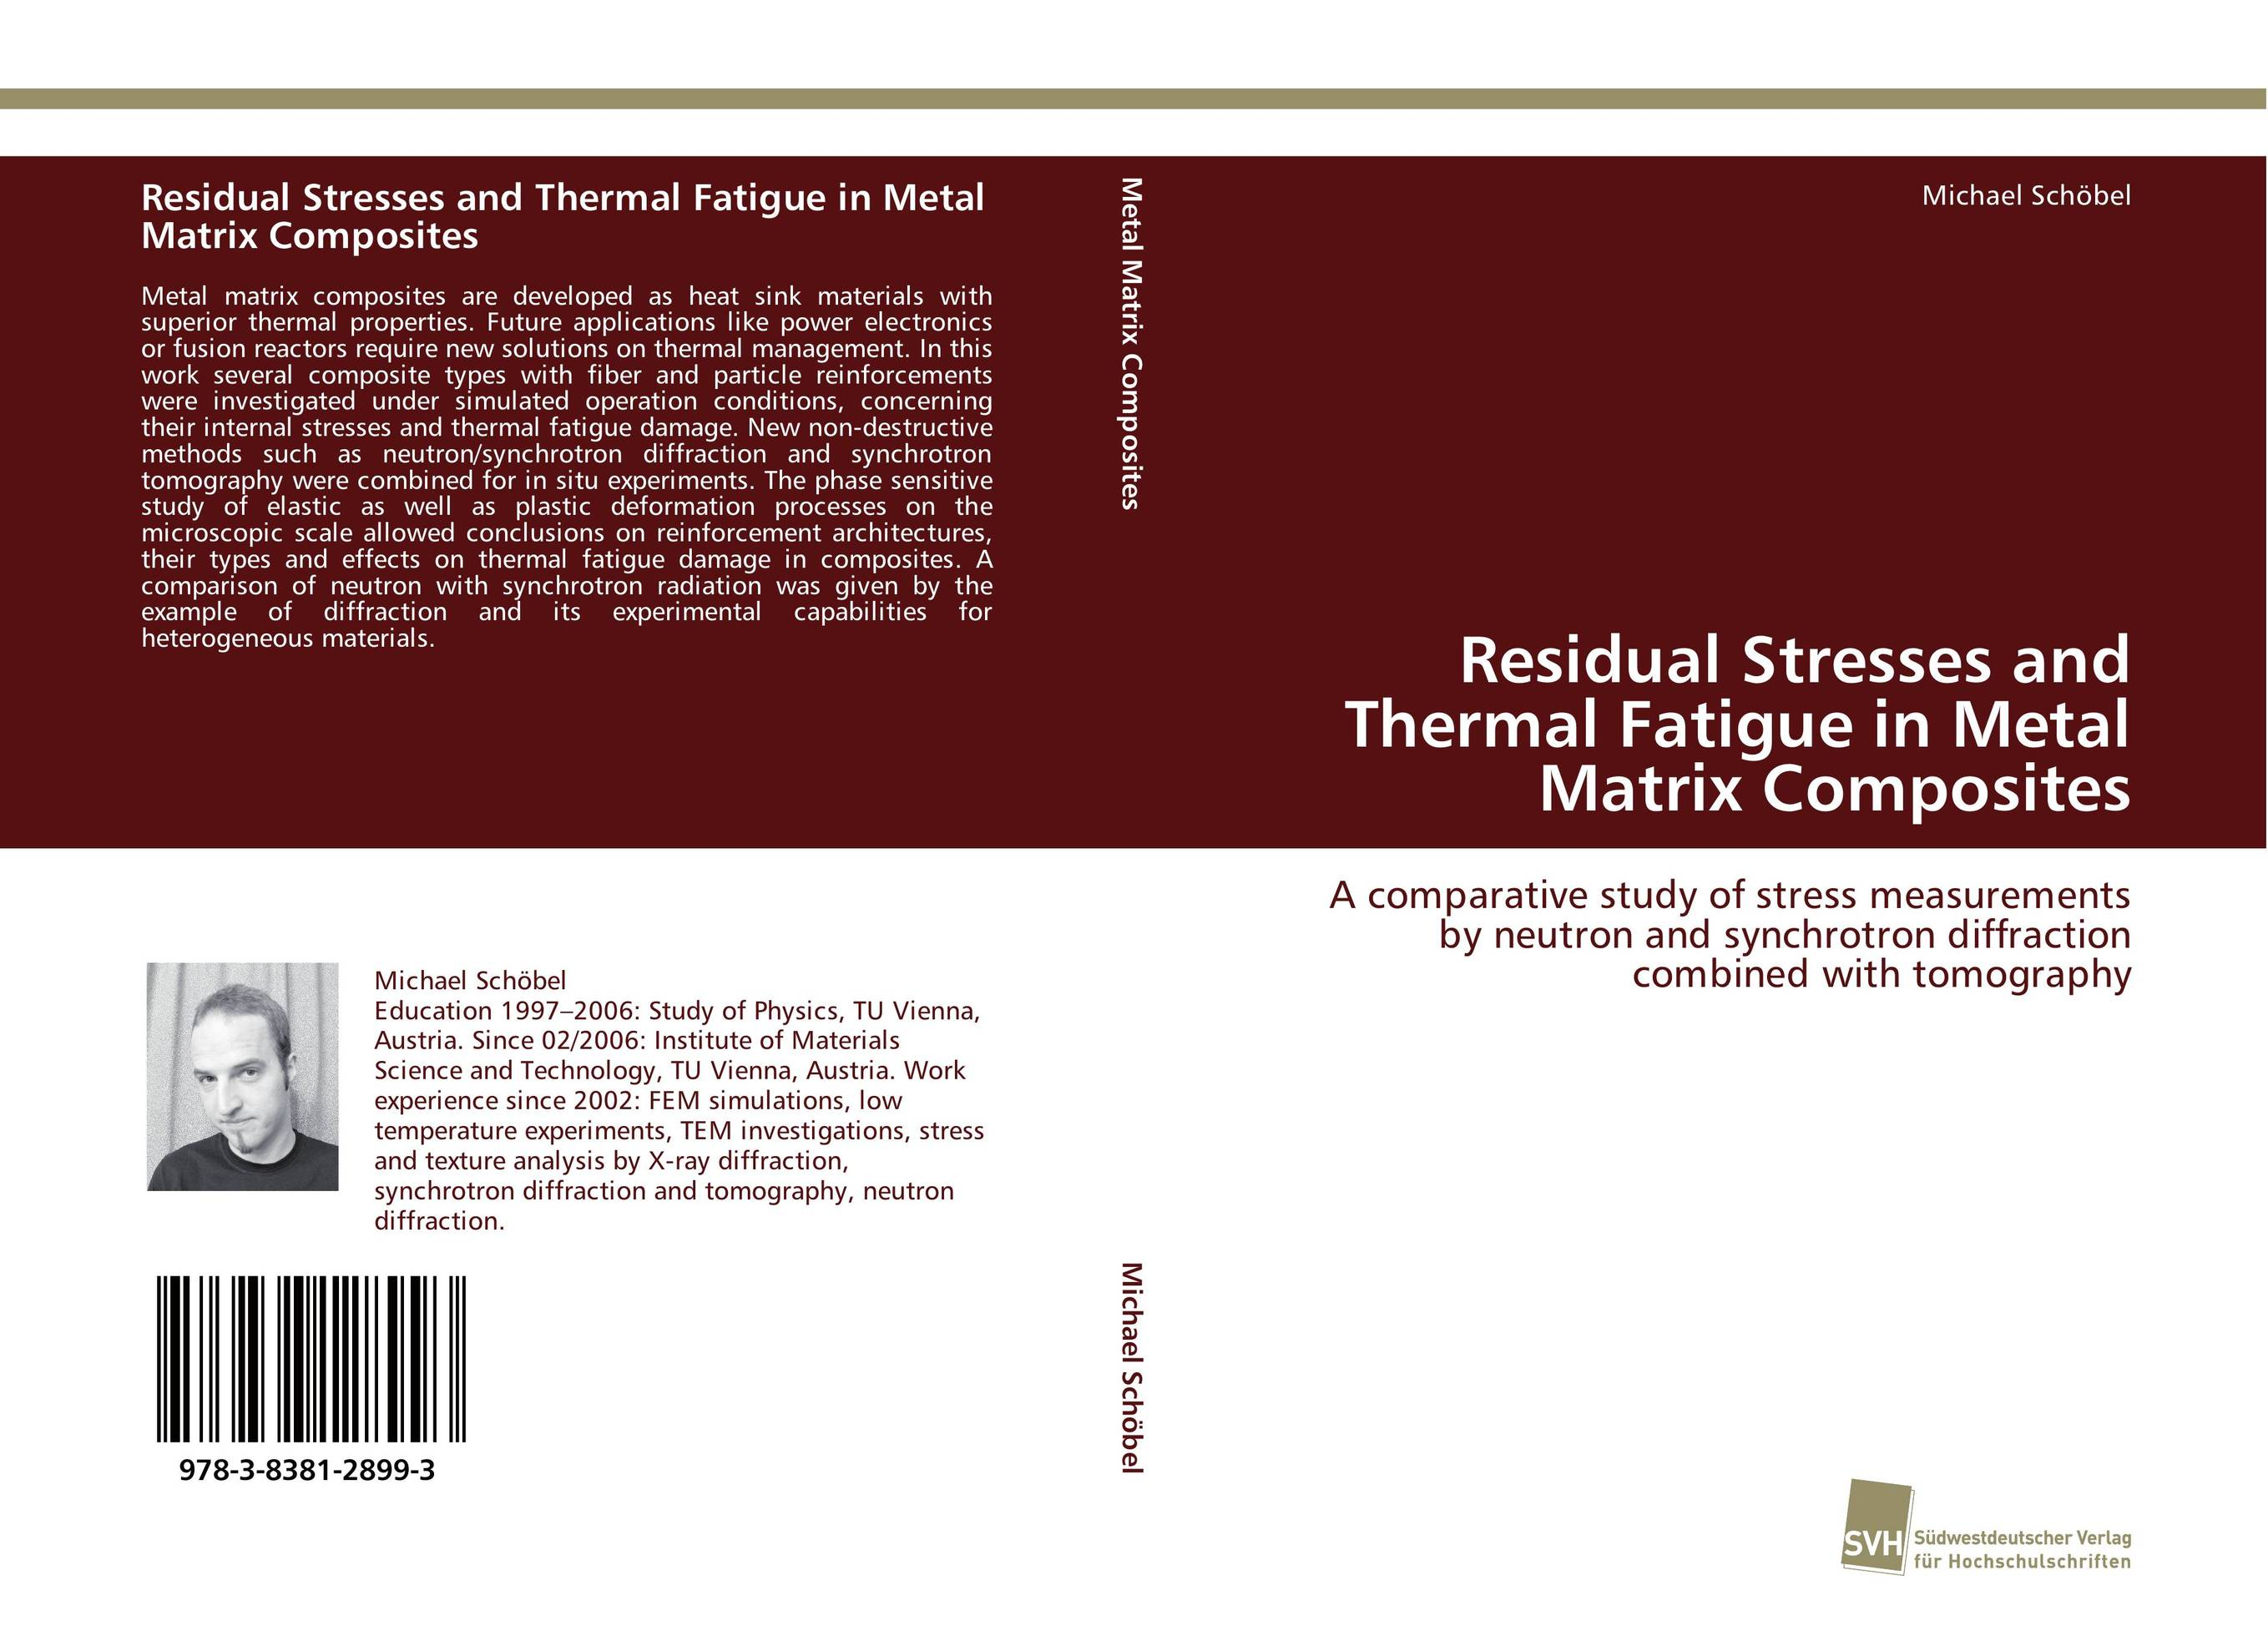 Residual Stresses and Thermal Fatigue in Metal Matrix Composites studies on in situ microfibrillar composites